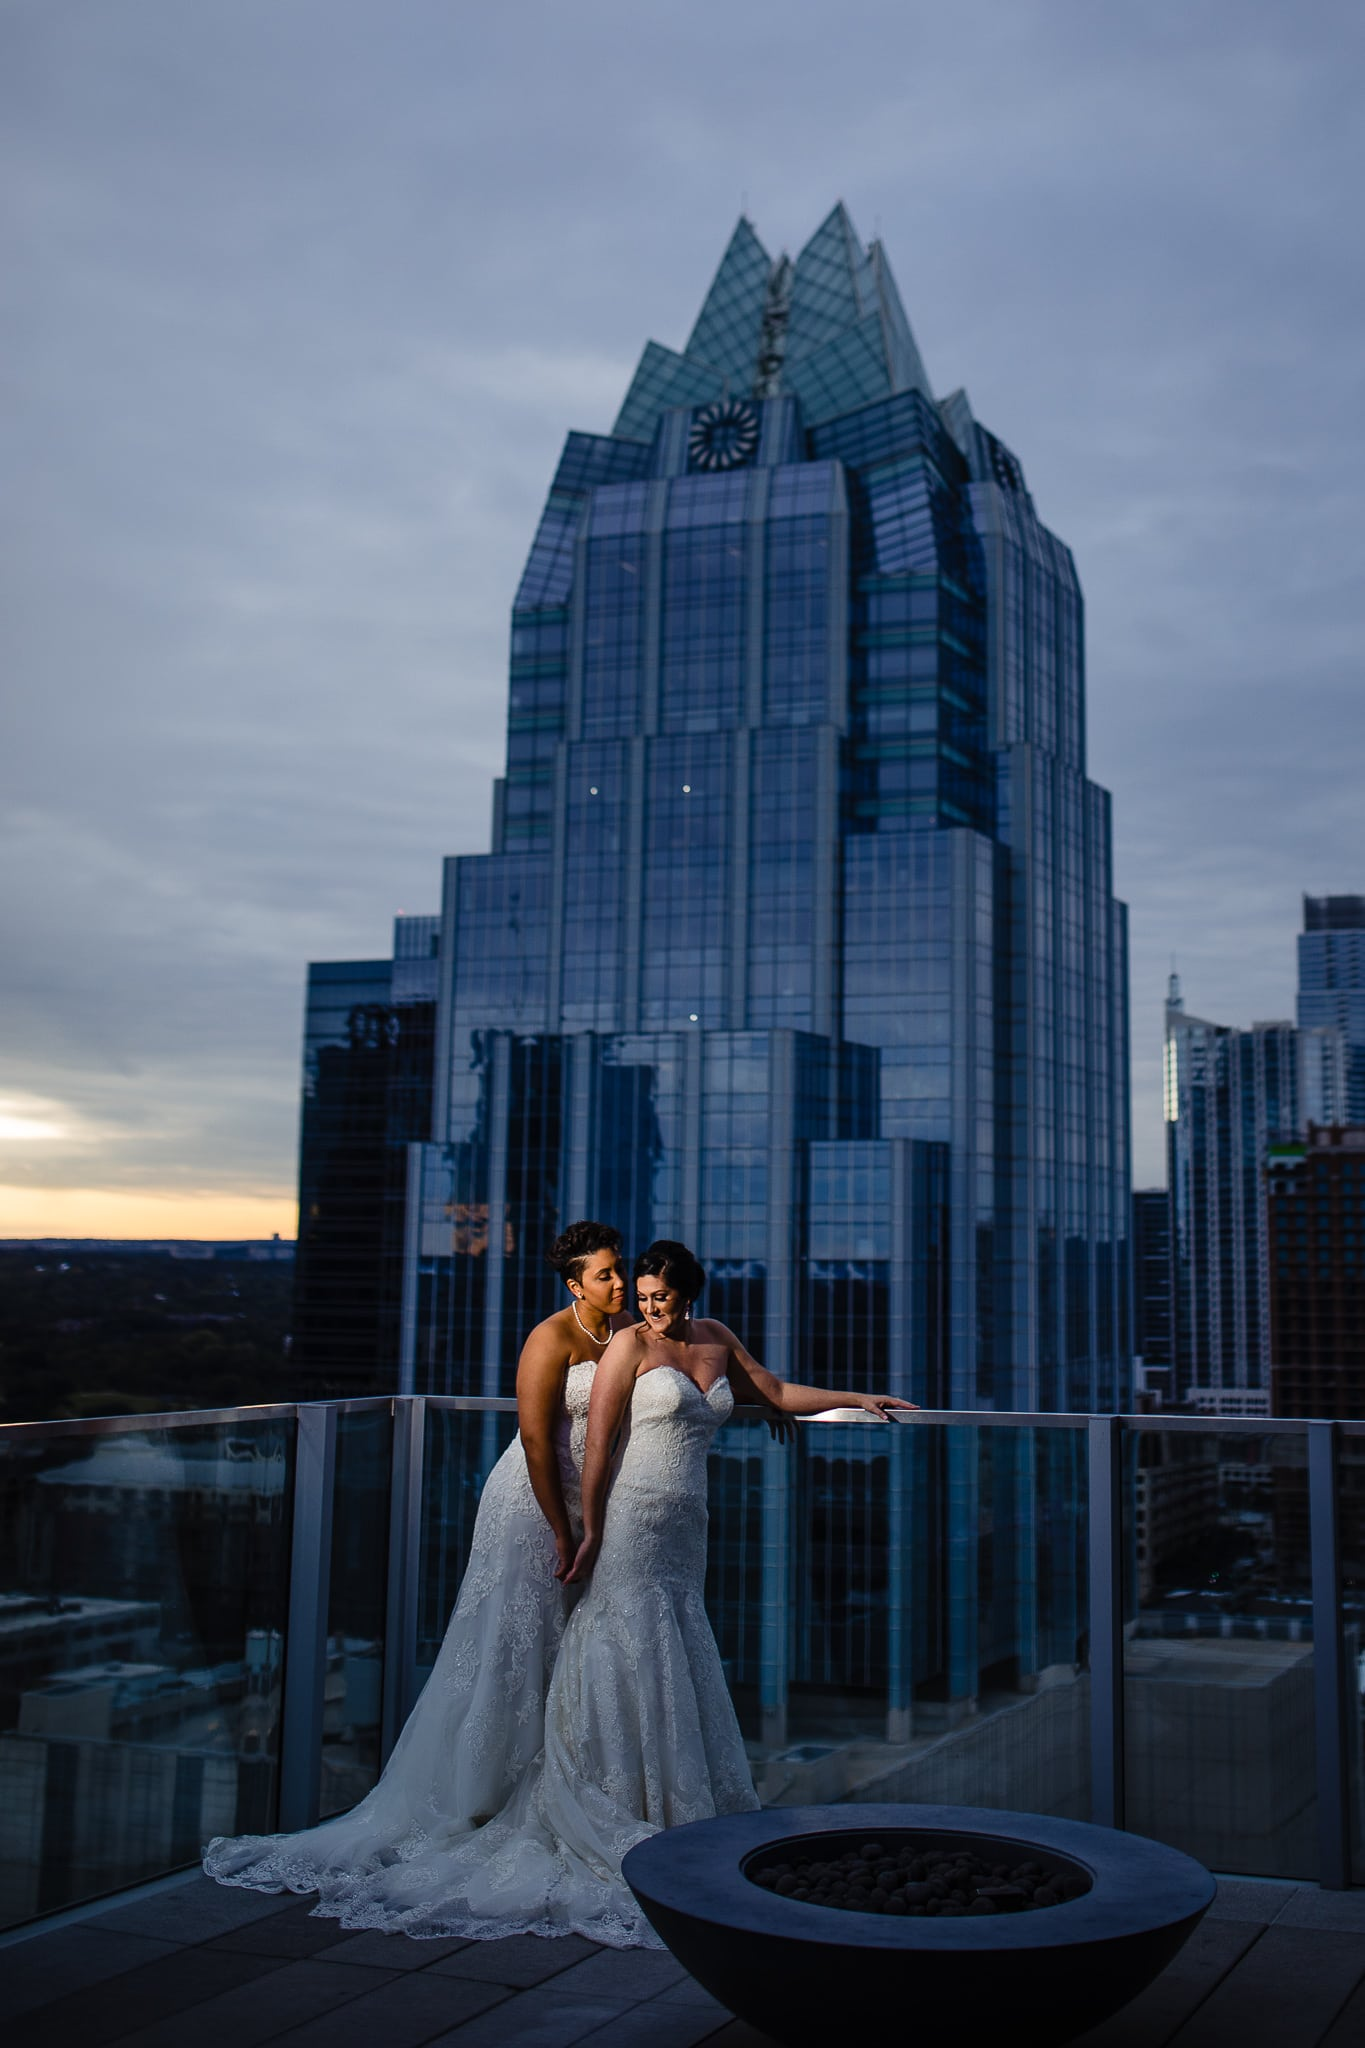 best wedding photographer in austin texas john winters photography westin downtown austin rooftop lgbtaiq same sex wedding vendor